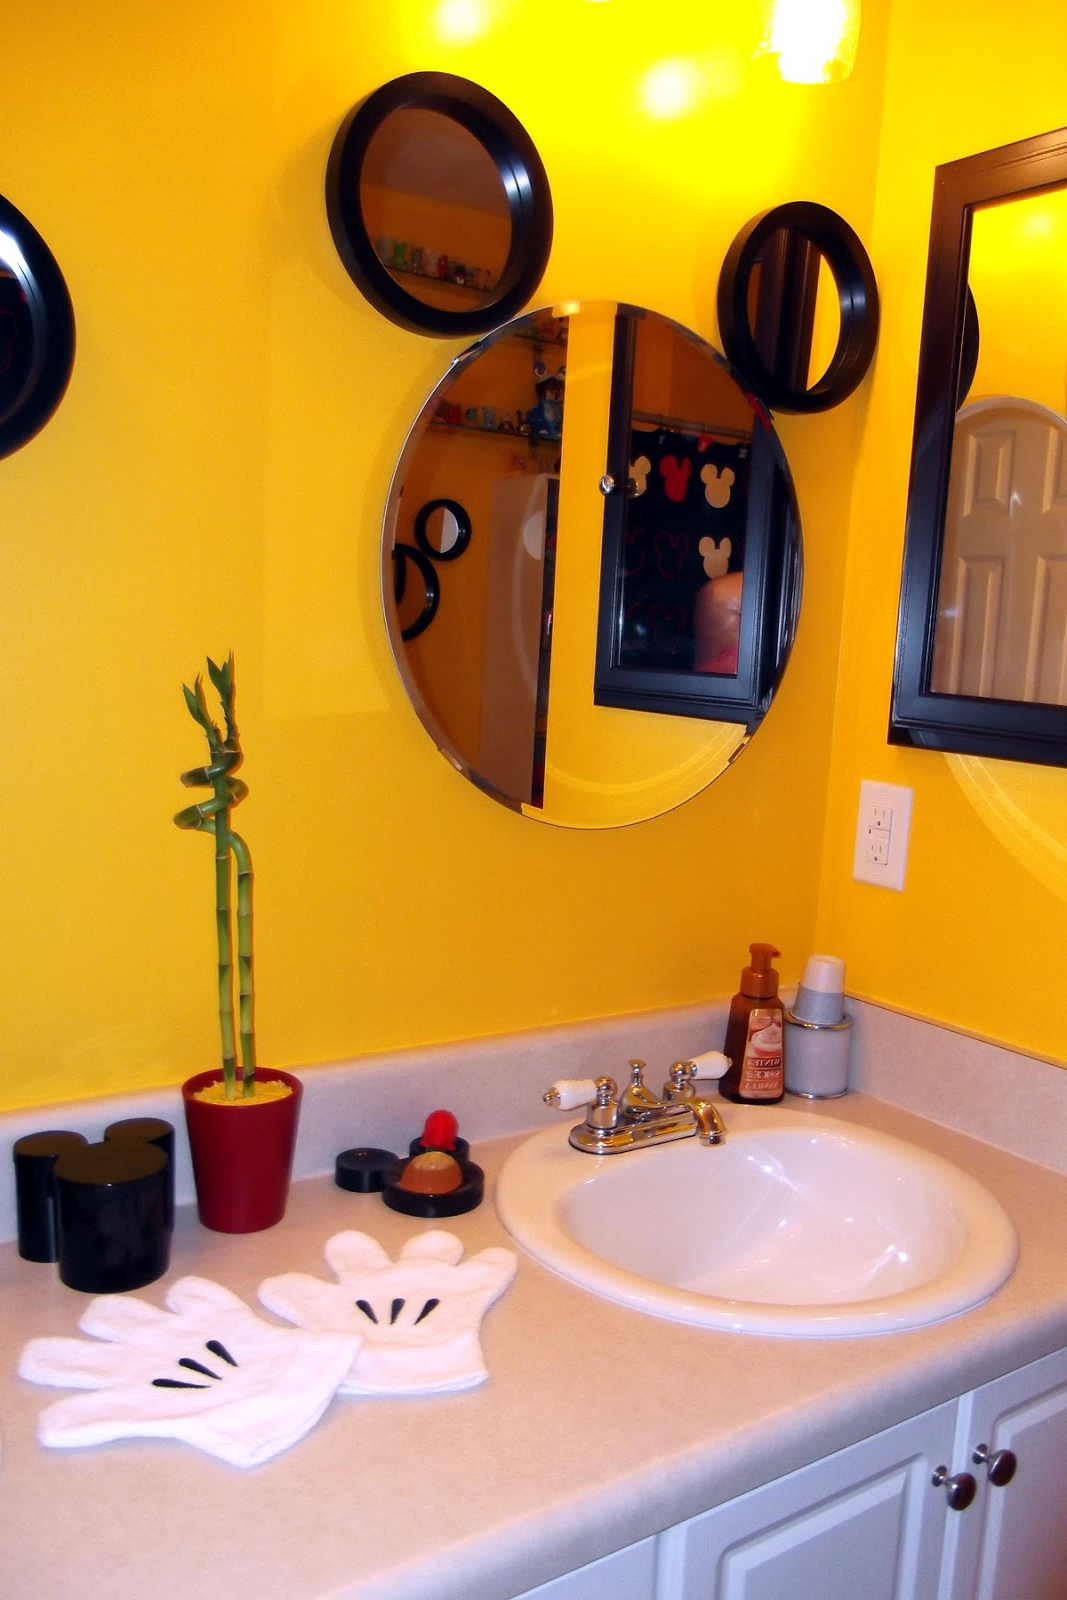 Spectacular Mickey Mouse Bathroom Set — Home Decor With Favorite Mickey Mouse Wall Mirrors (View 16 of 20)